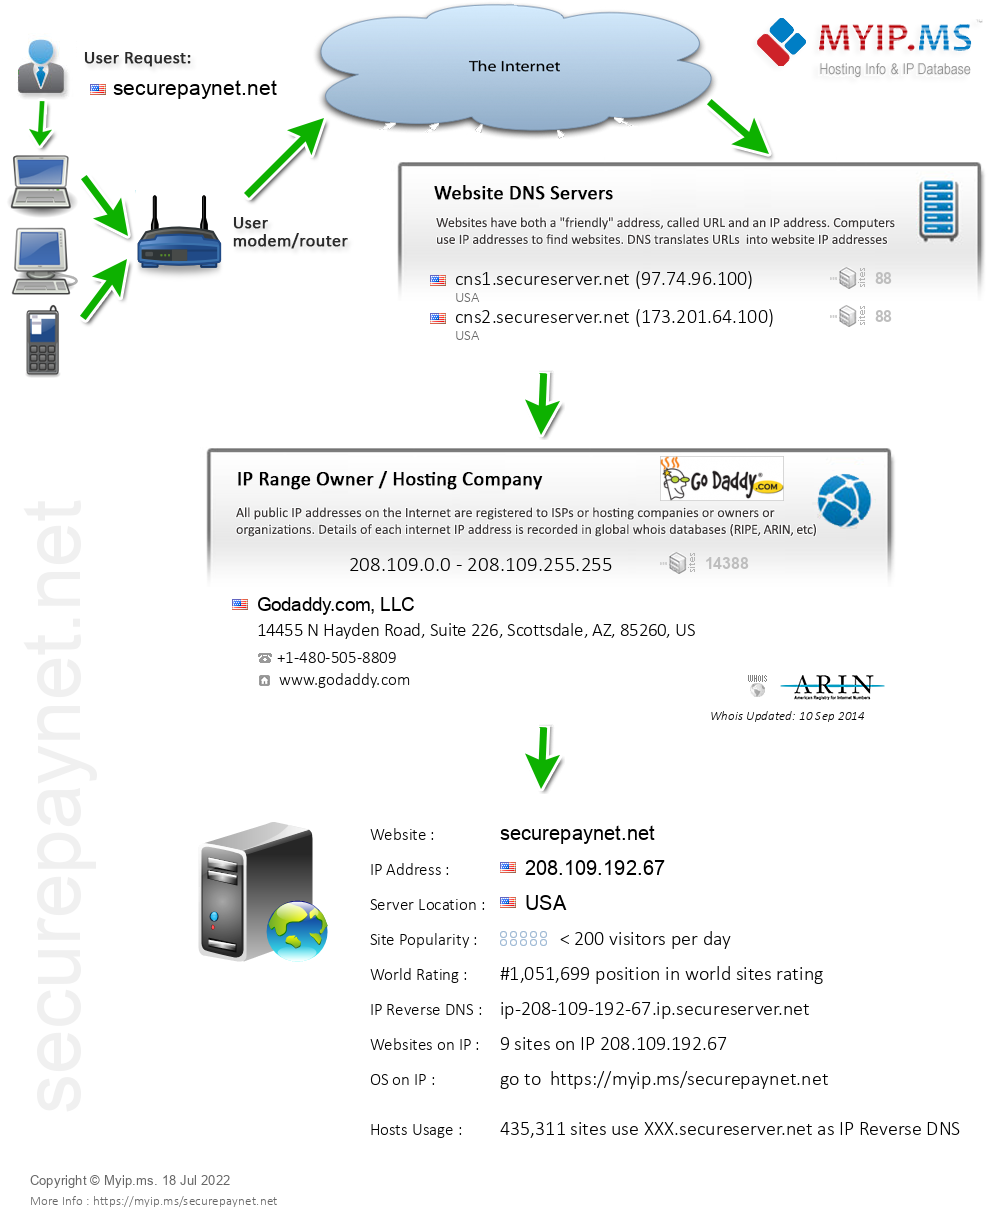 Securepaynet.net - Website Hosting Visual IP Diagram